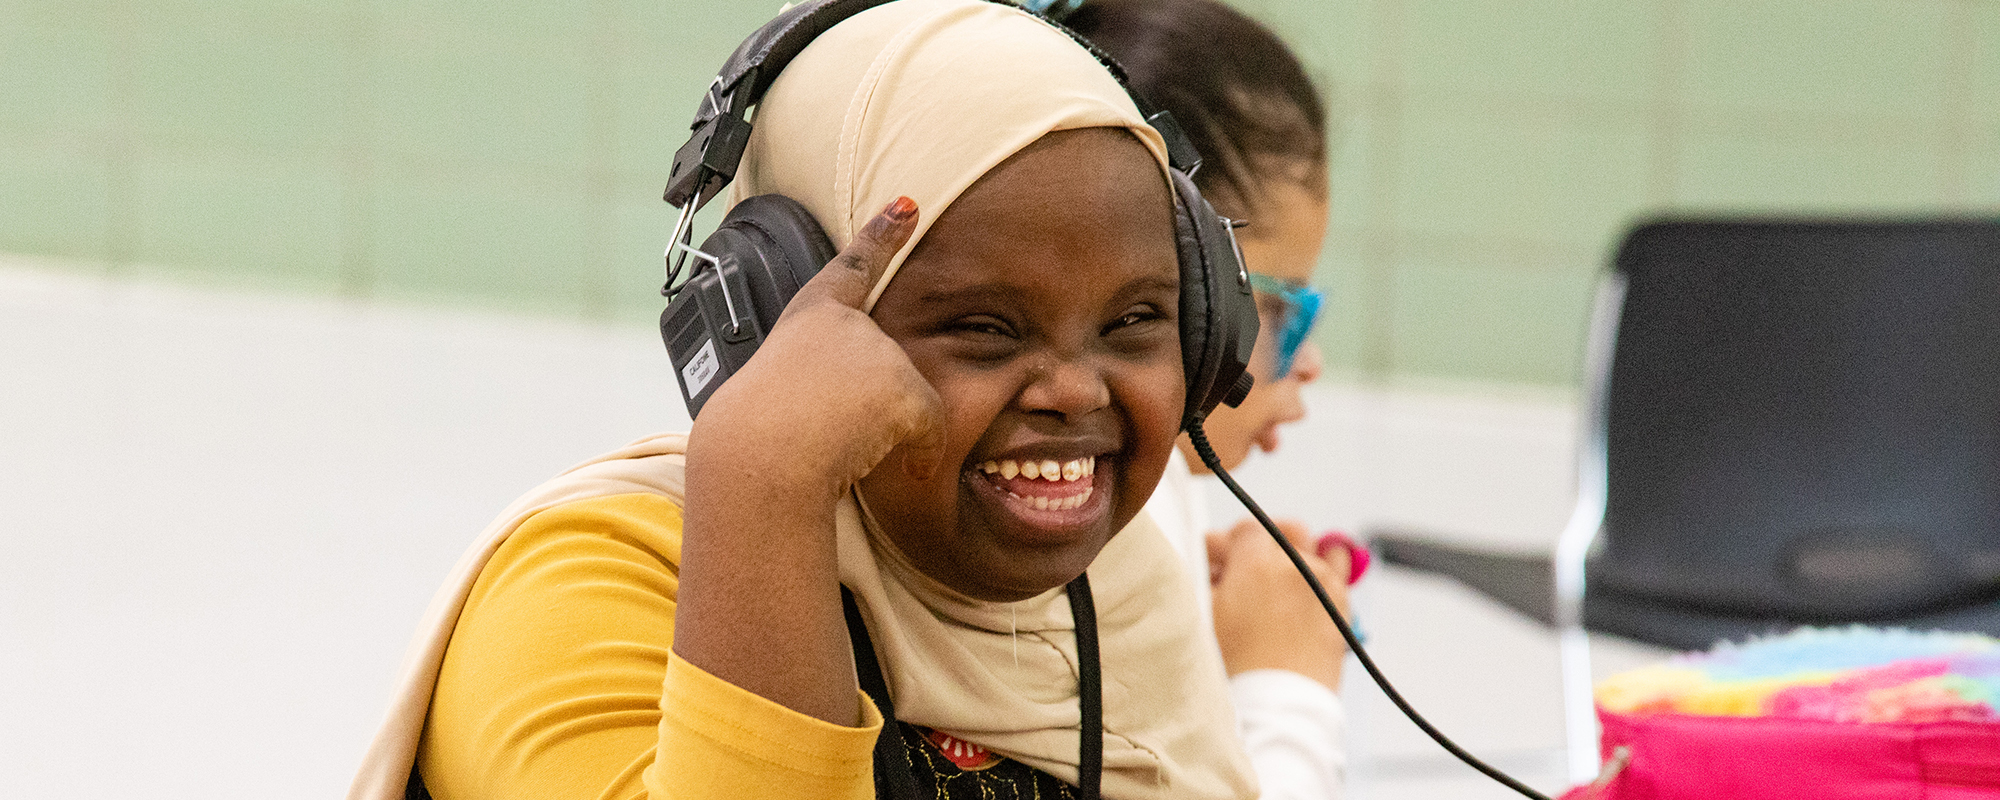 Young woman with a big smile wearing headphones